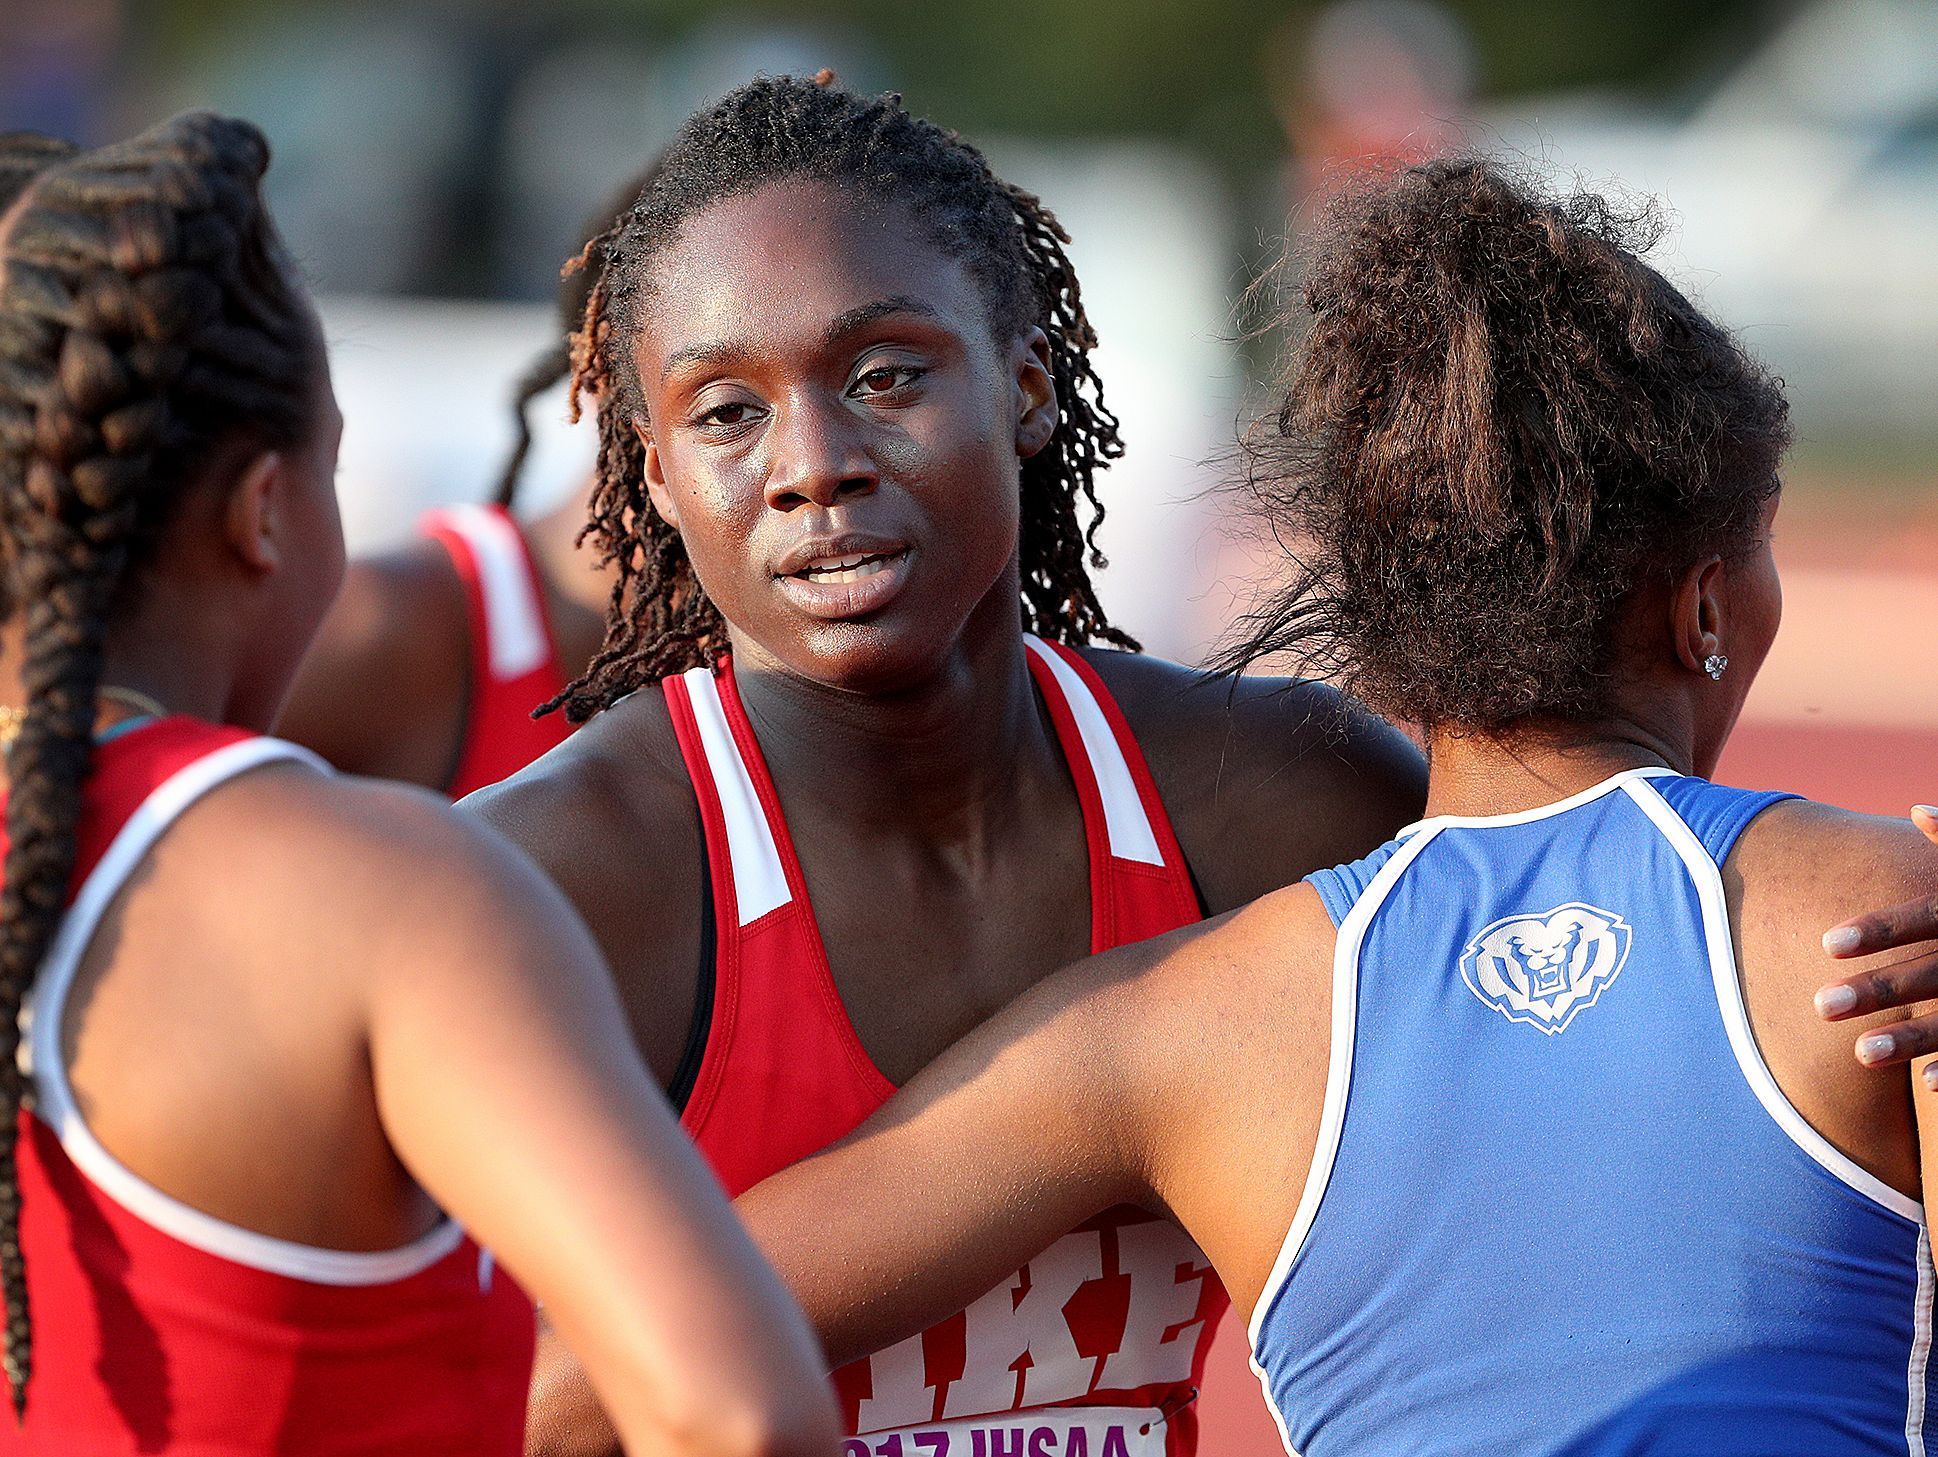 Pike's Lynna Irby hugs her competitors following the Girls 200 Meter dash.